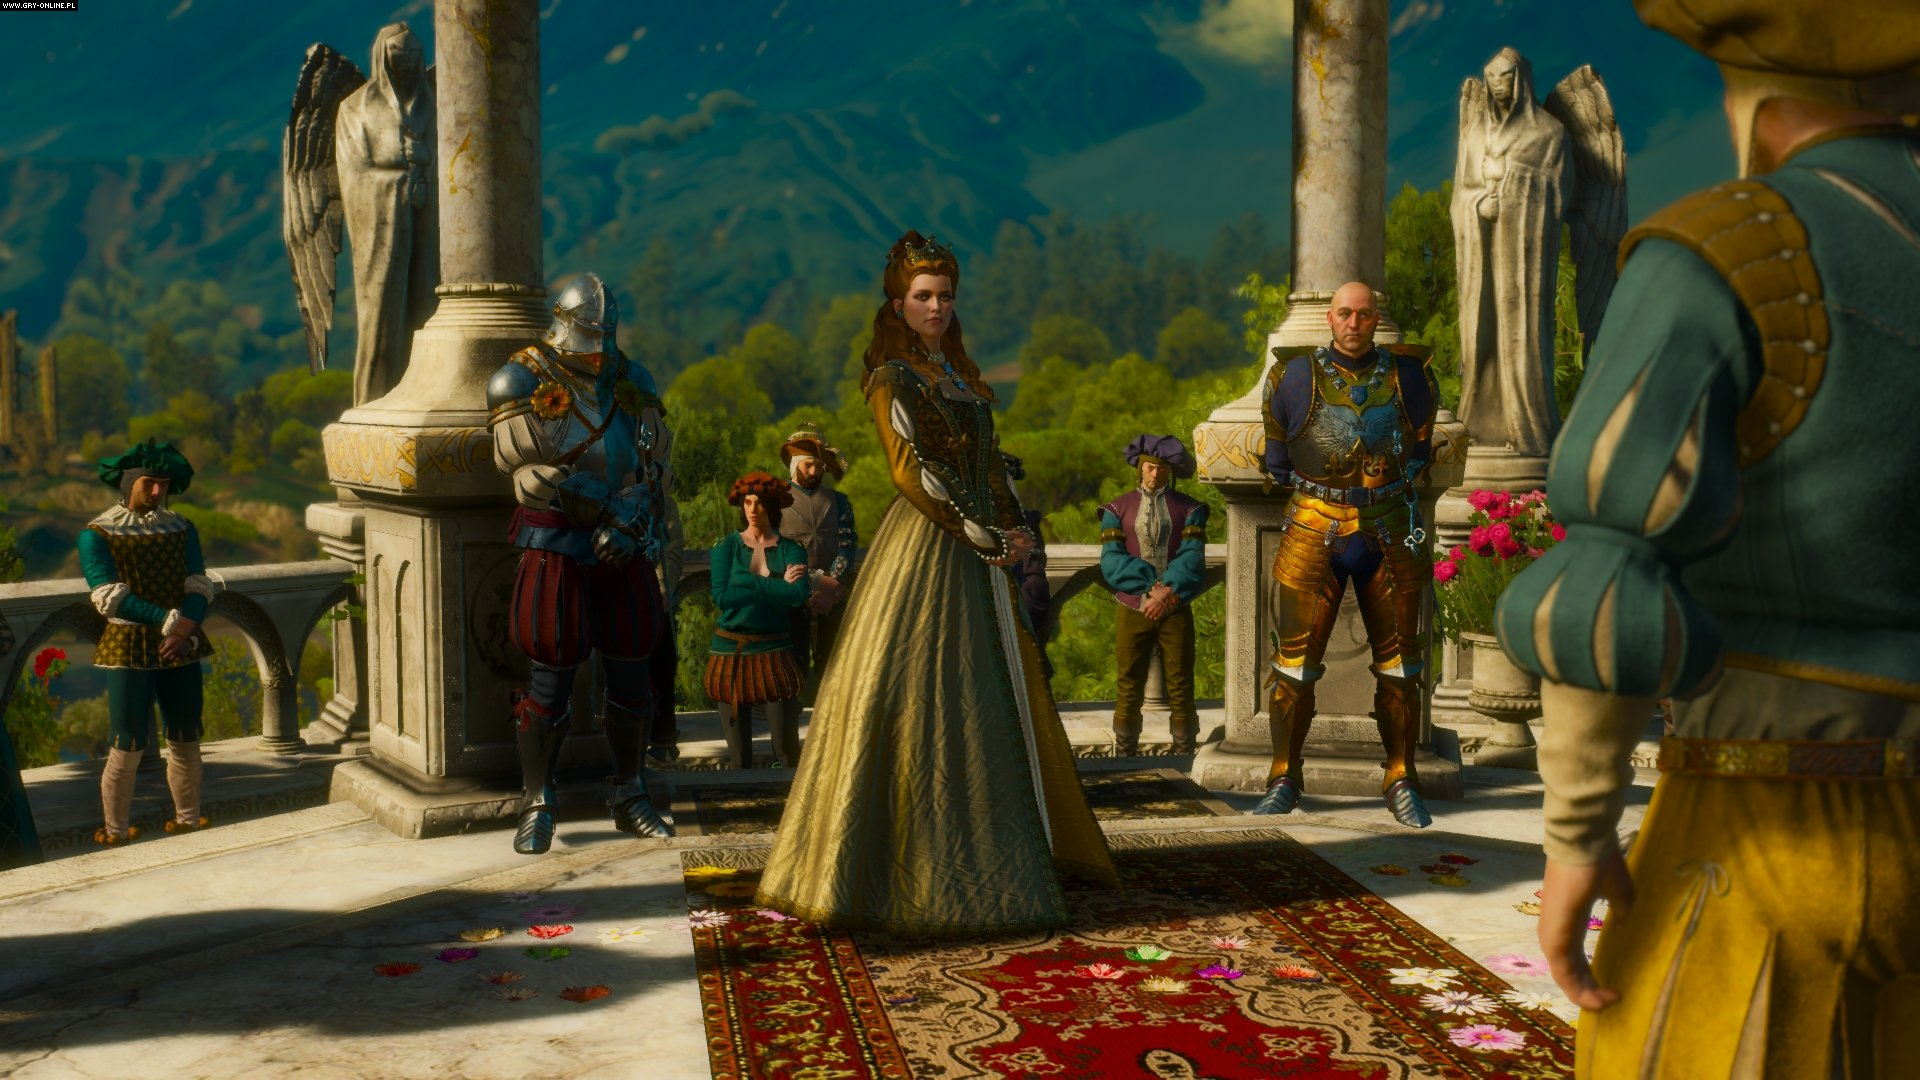 The Witcher 3: Blood and Wine PC, XONE, PS4 Games Image 5/47, CD Projekt RED, Bandai Namco Entertainment